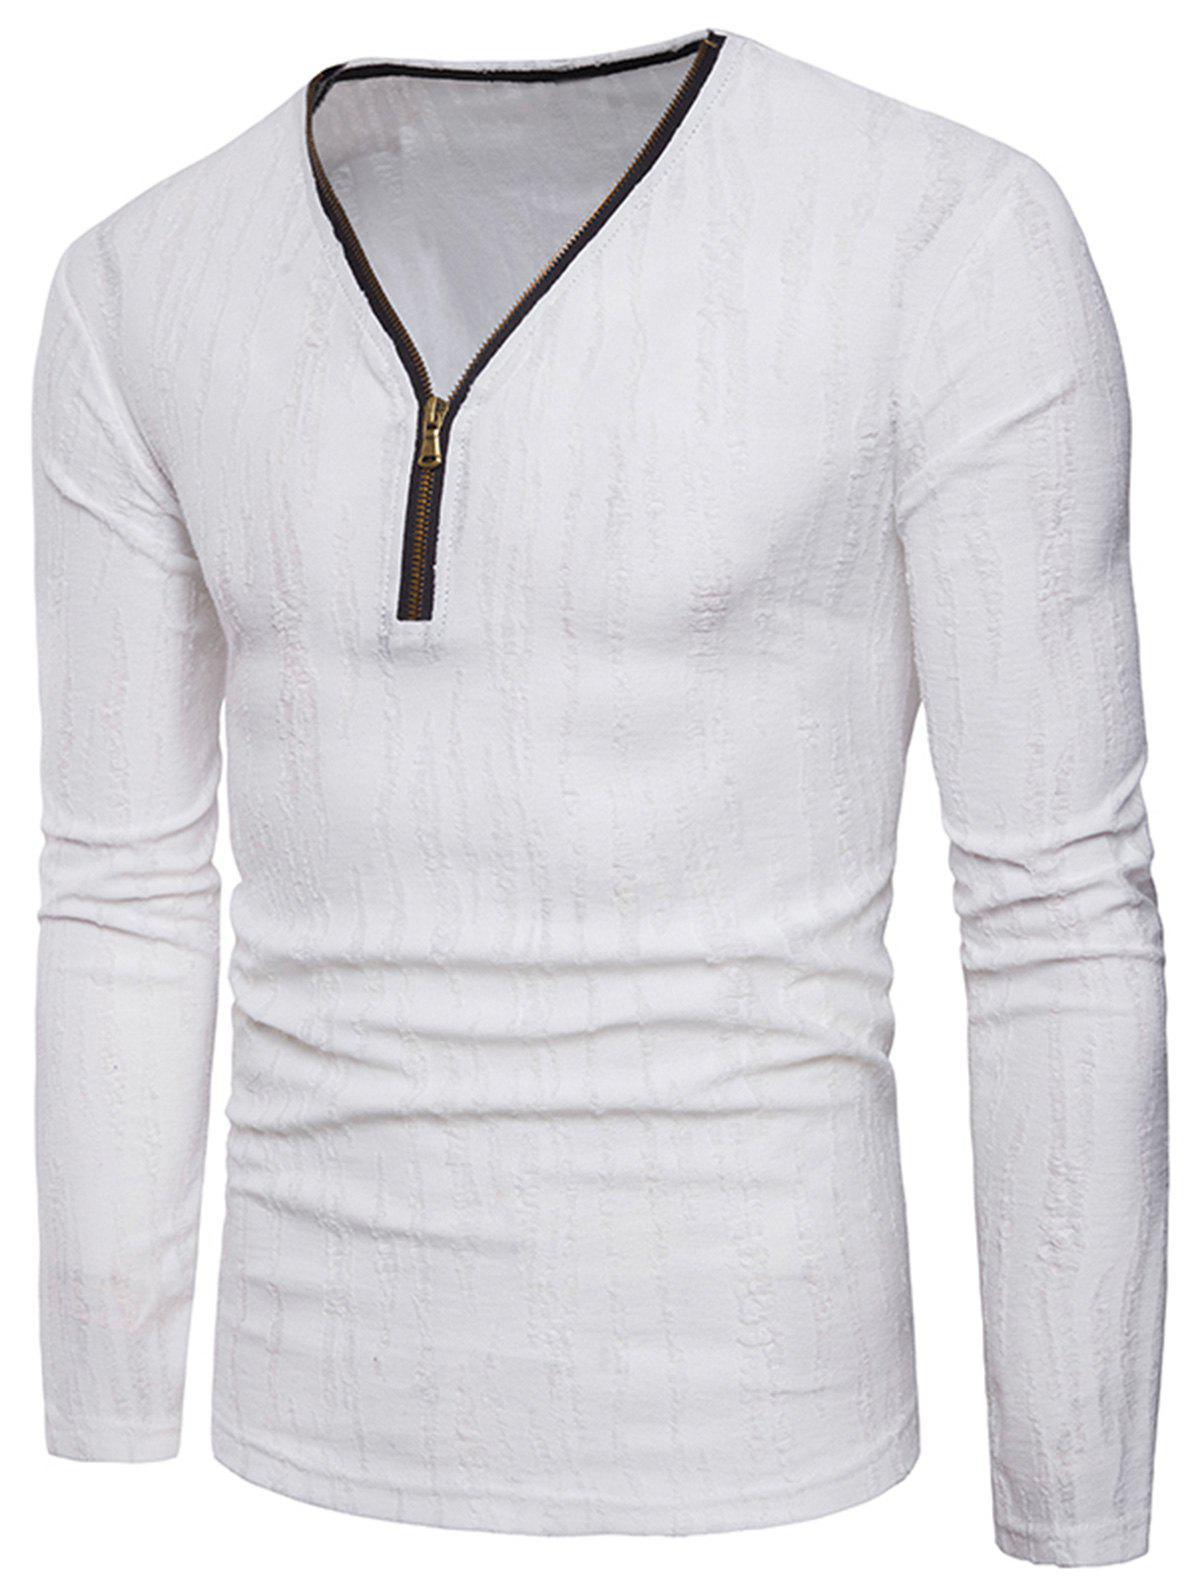 Long Sleeve Zipper Distressed T-Shirt - WHITE L